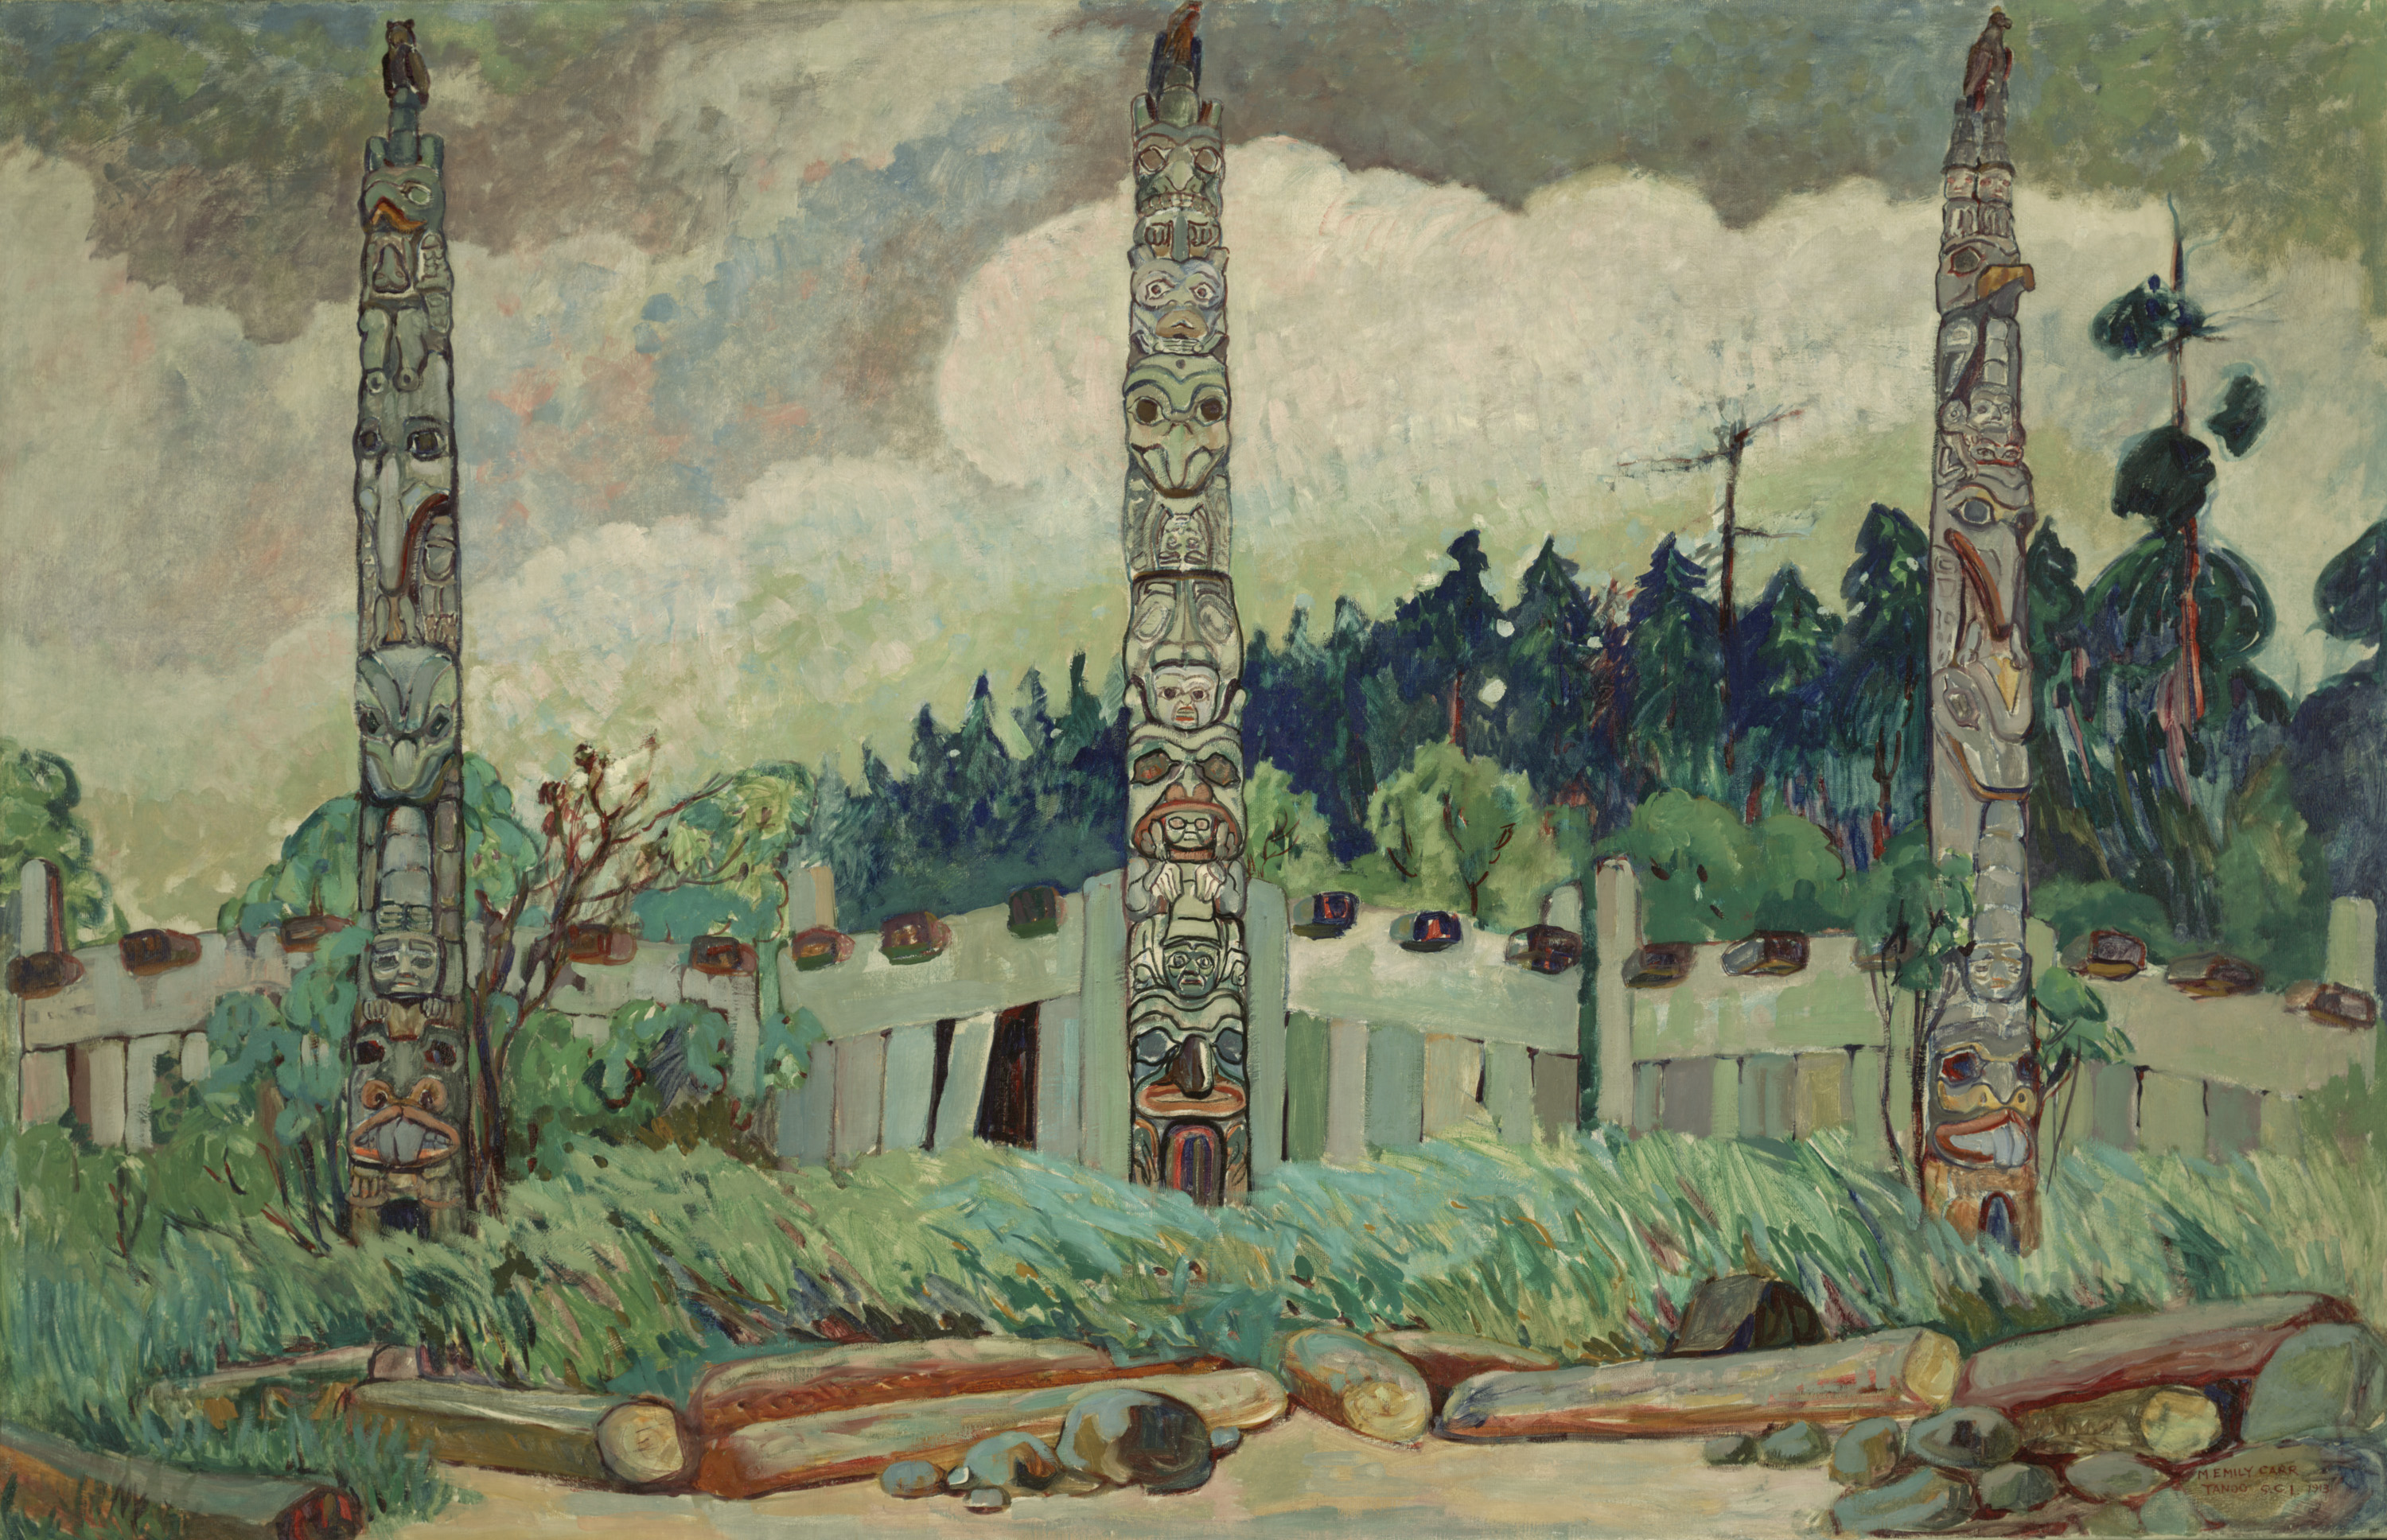 Emily Carr, Tanoo, Queen Charlotte Island, BC, 1913, courtesy of Royal BC Museum, BC Archives, Canada